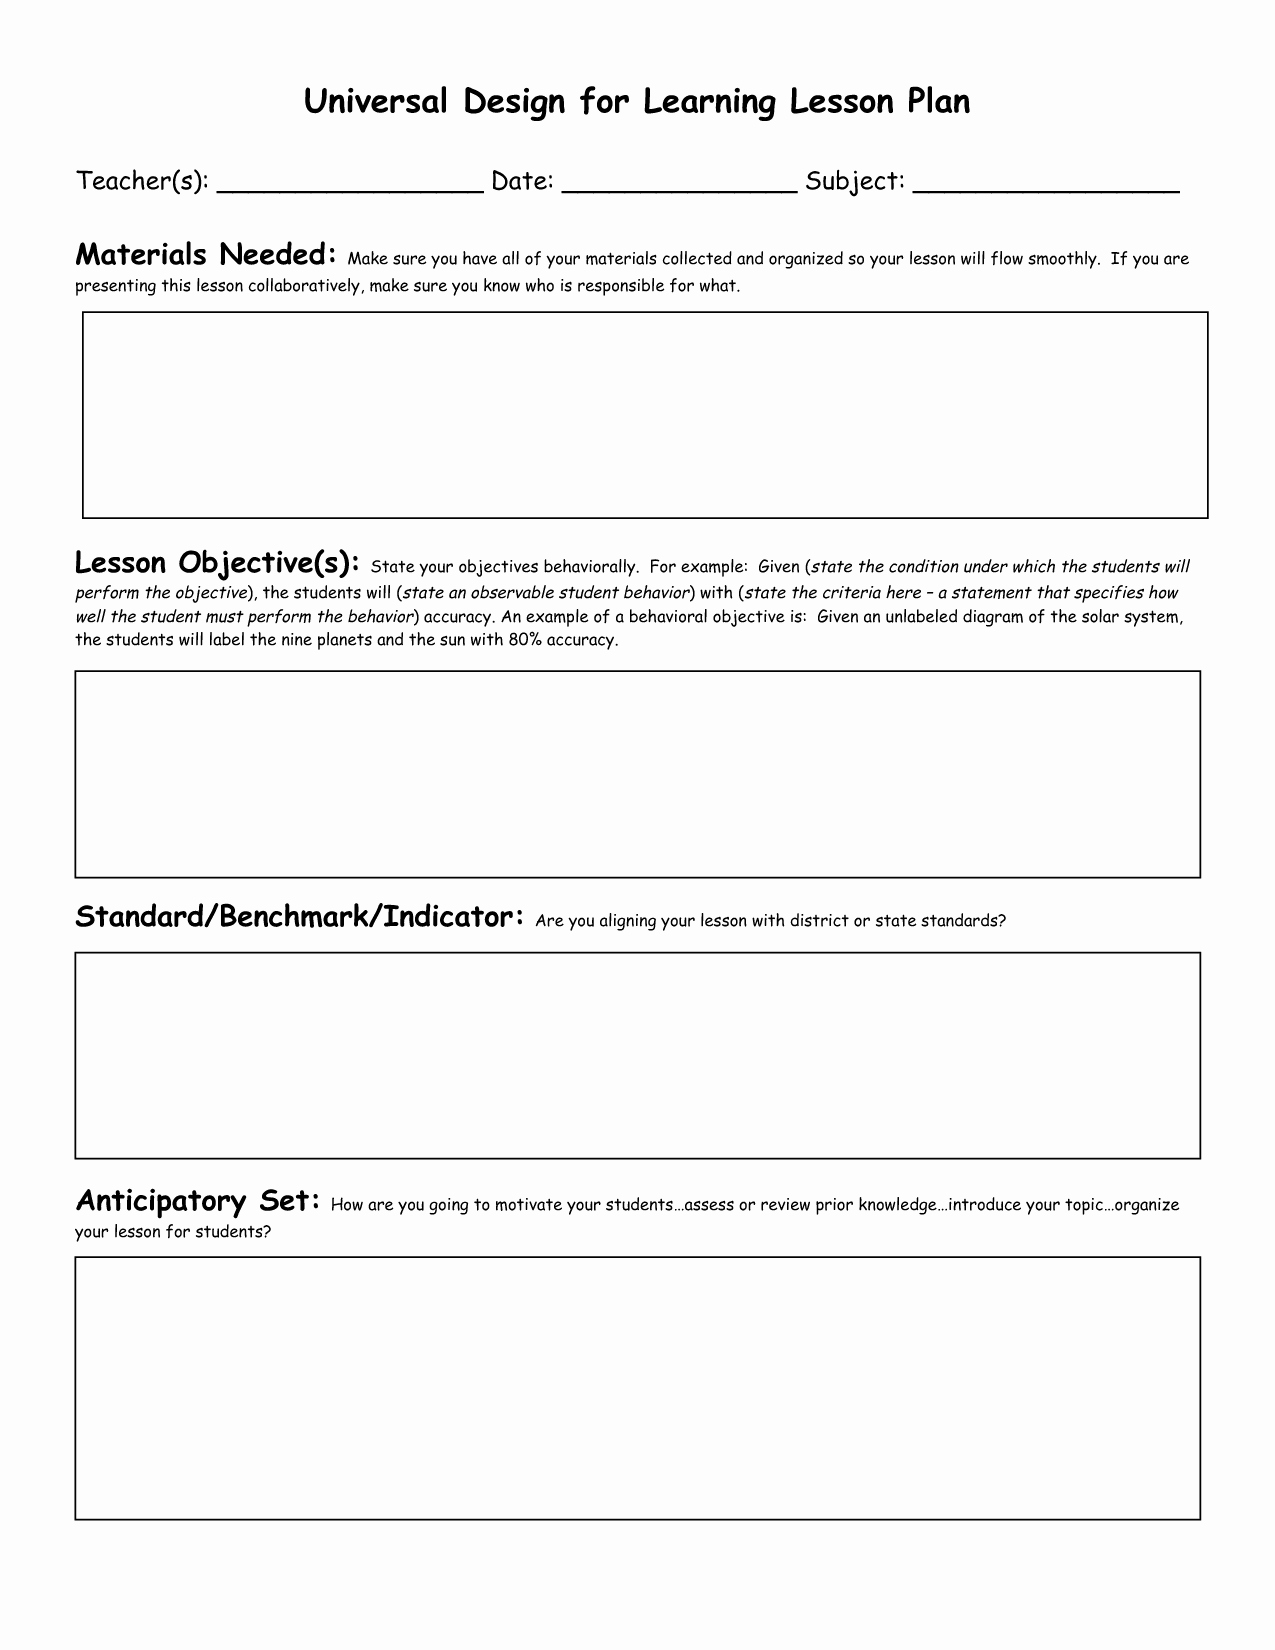 Unit Lesson Plan Template Awesome Art Lesson Plan Template Invitation Templates Fow94cwh Early Childhood Education